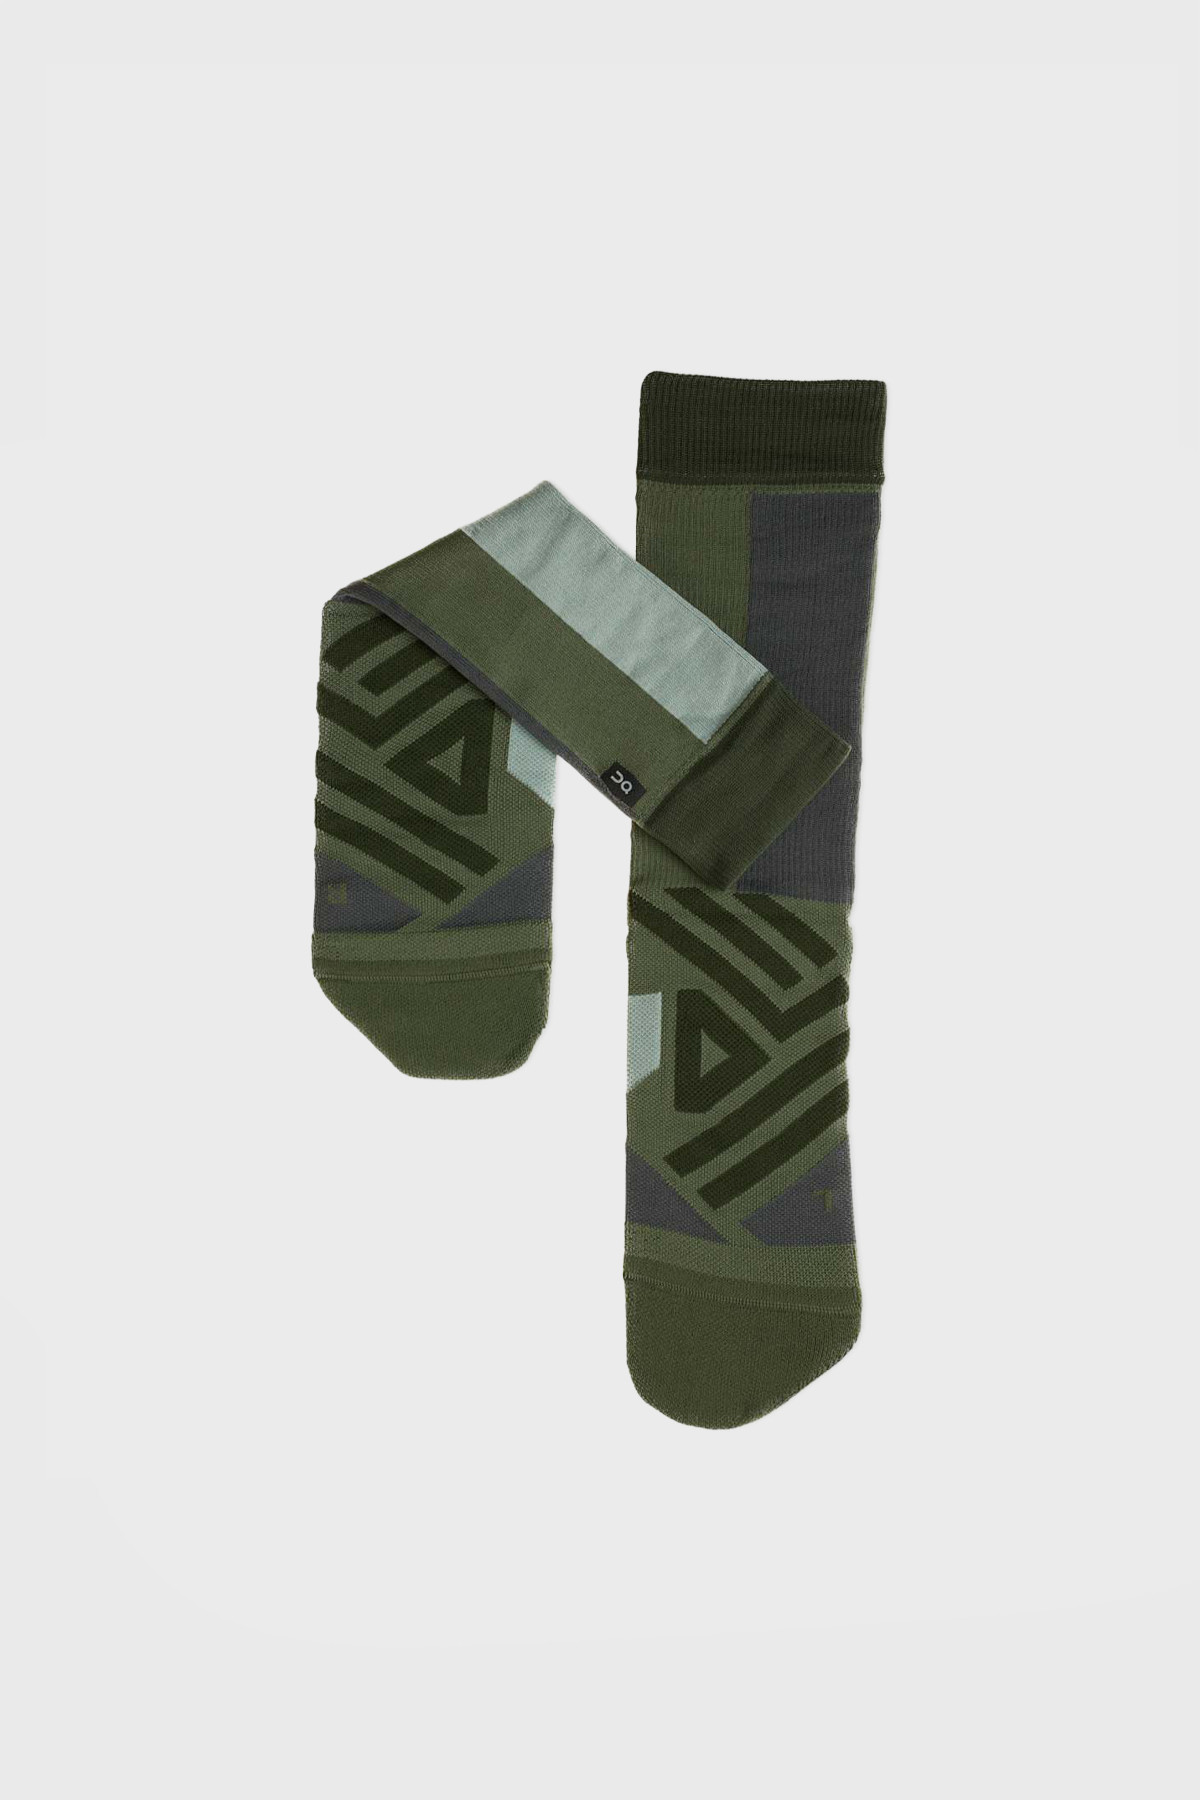 On - High Sock - Forest Moss